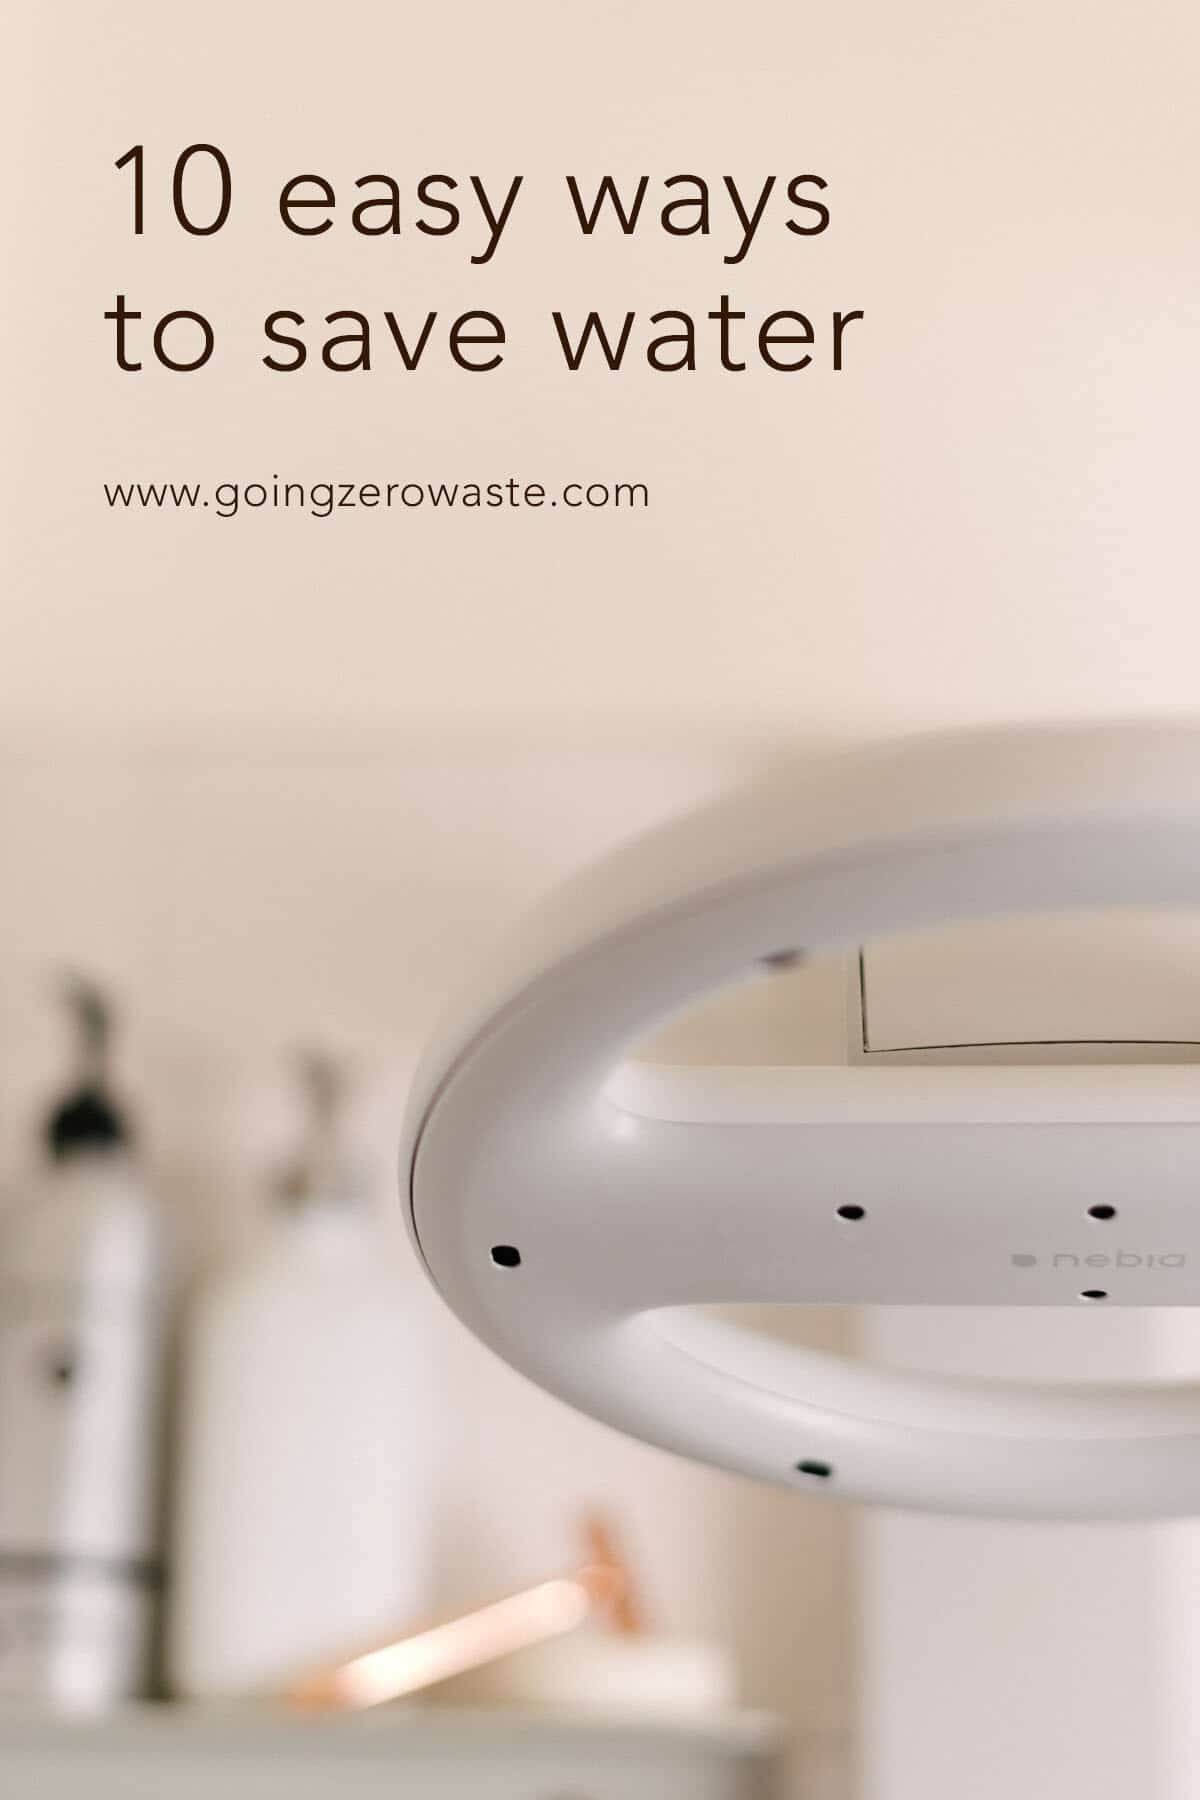 10 Easy Ways to Save Water